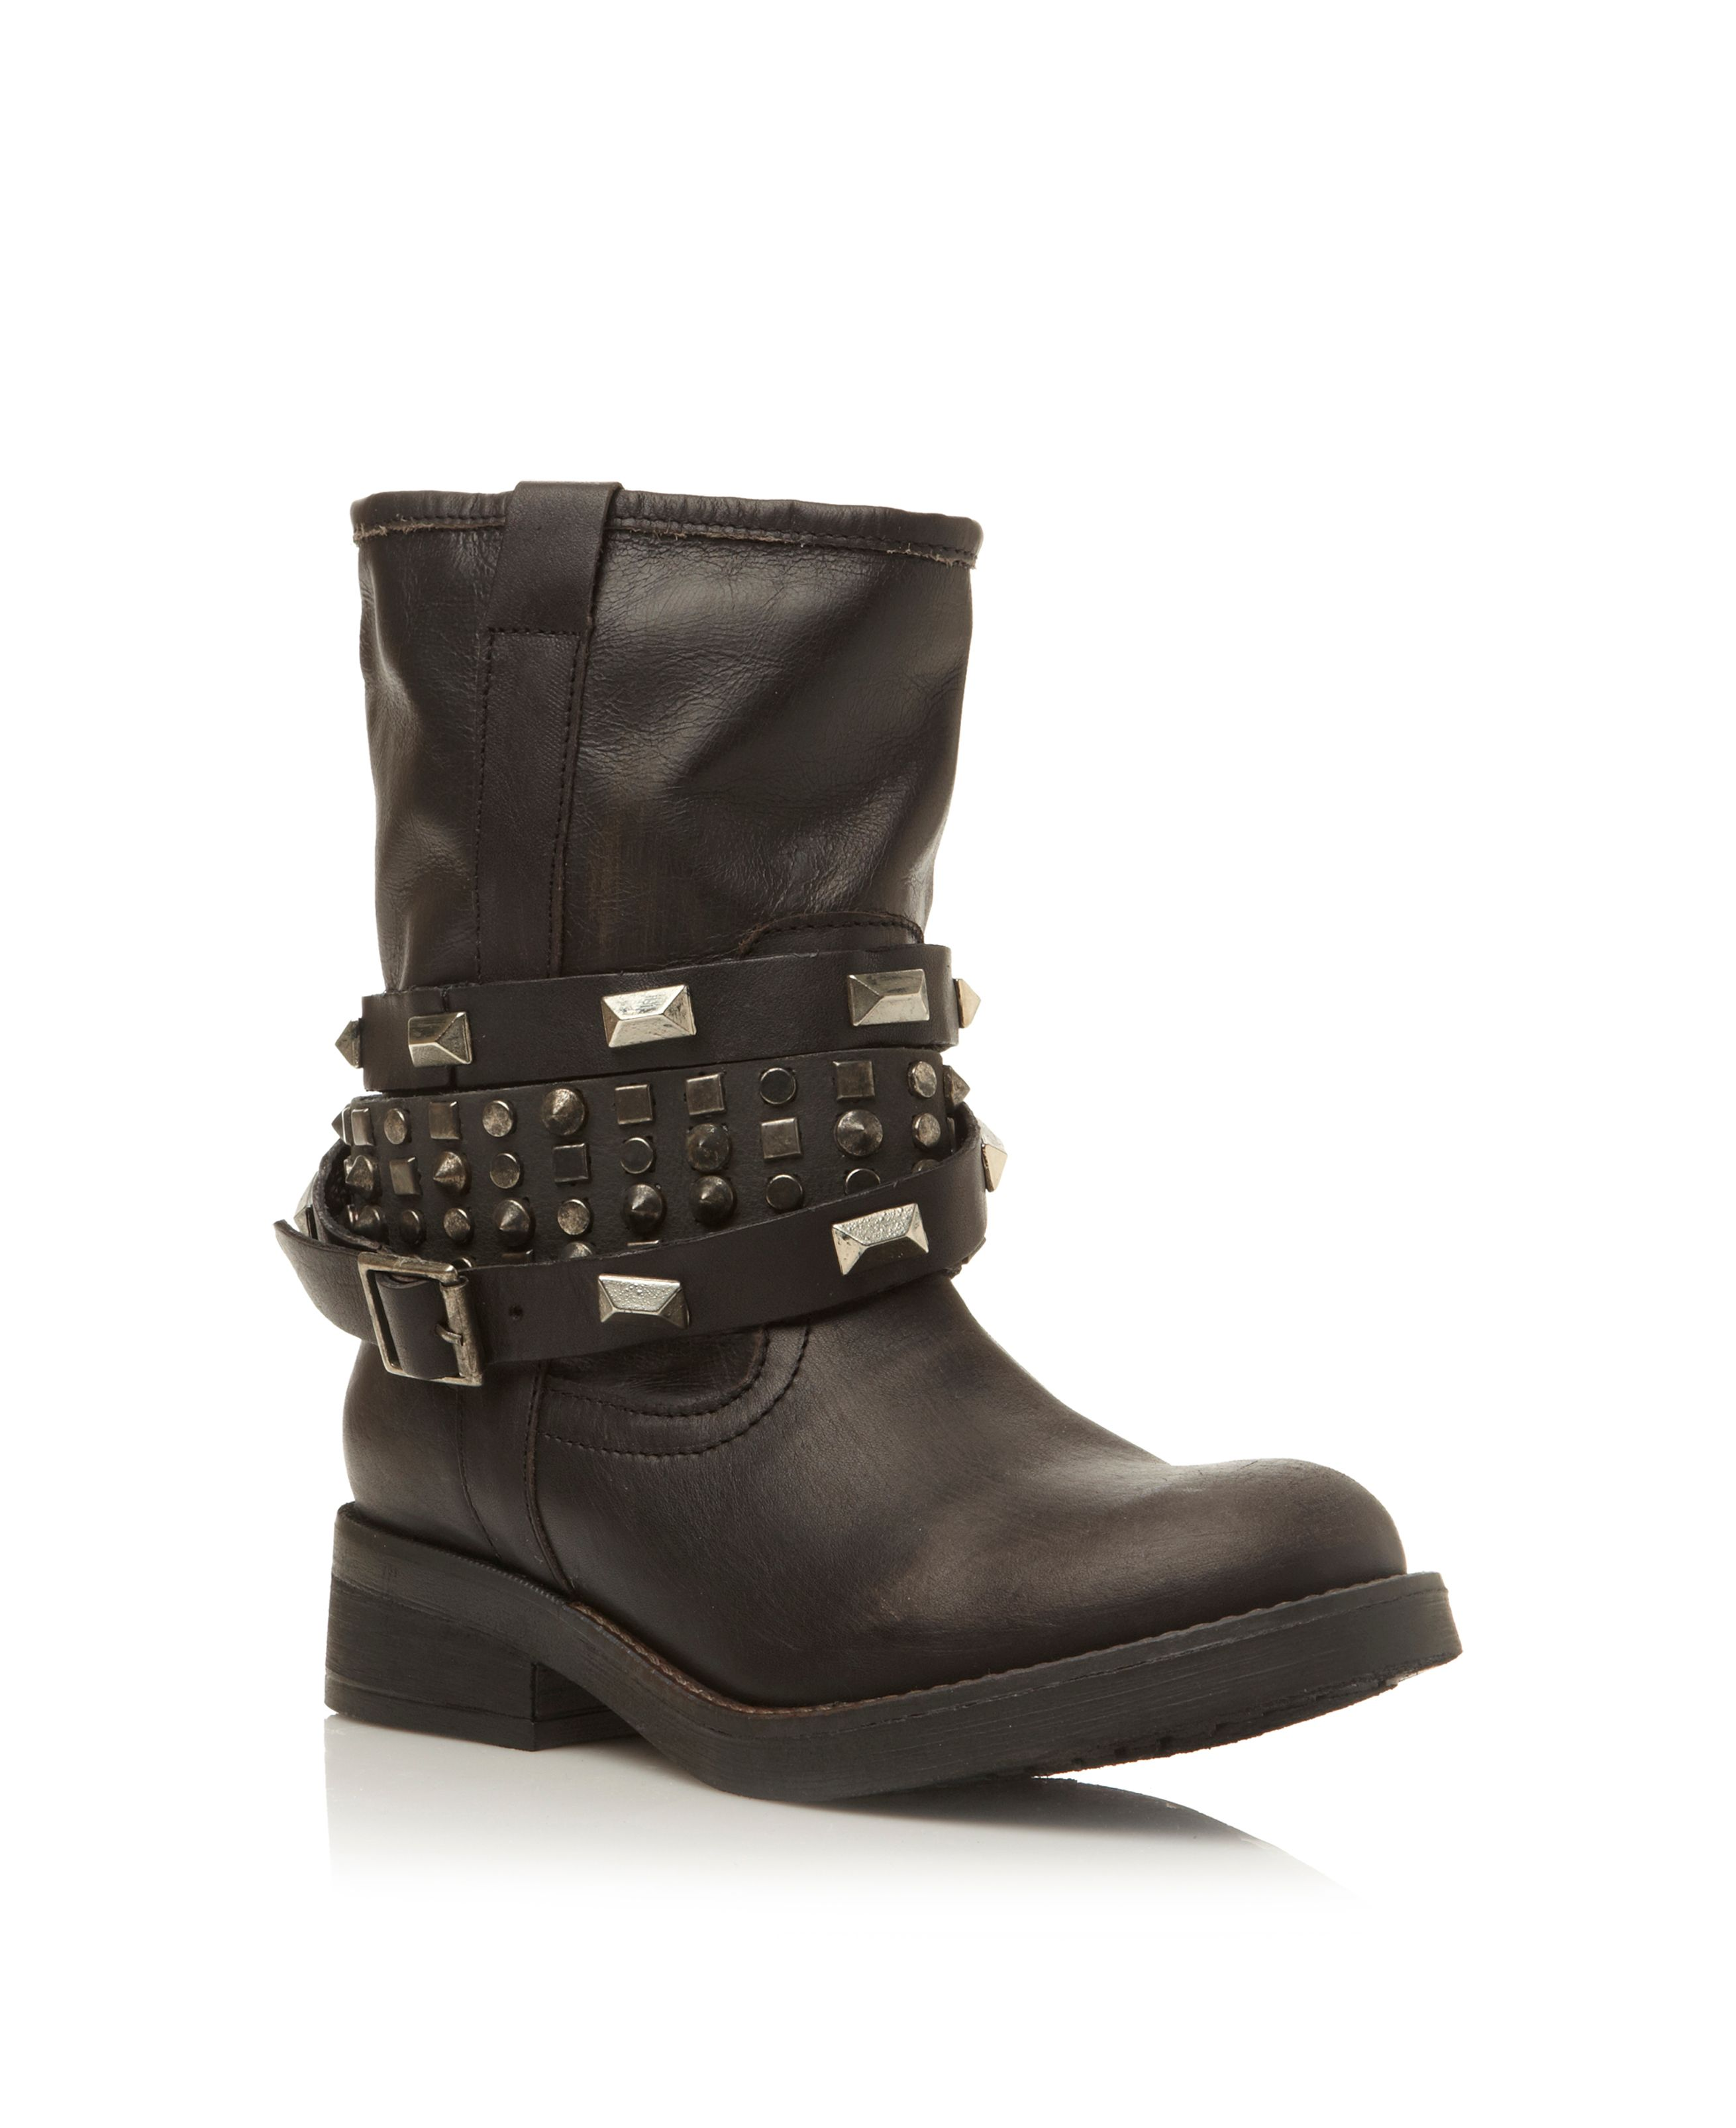 Mightee stud and strap detail boots